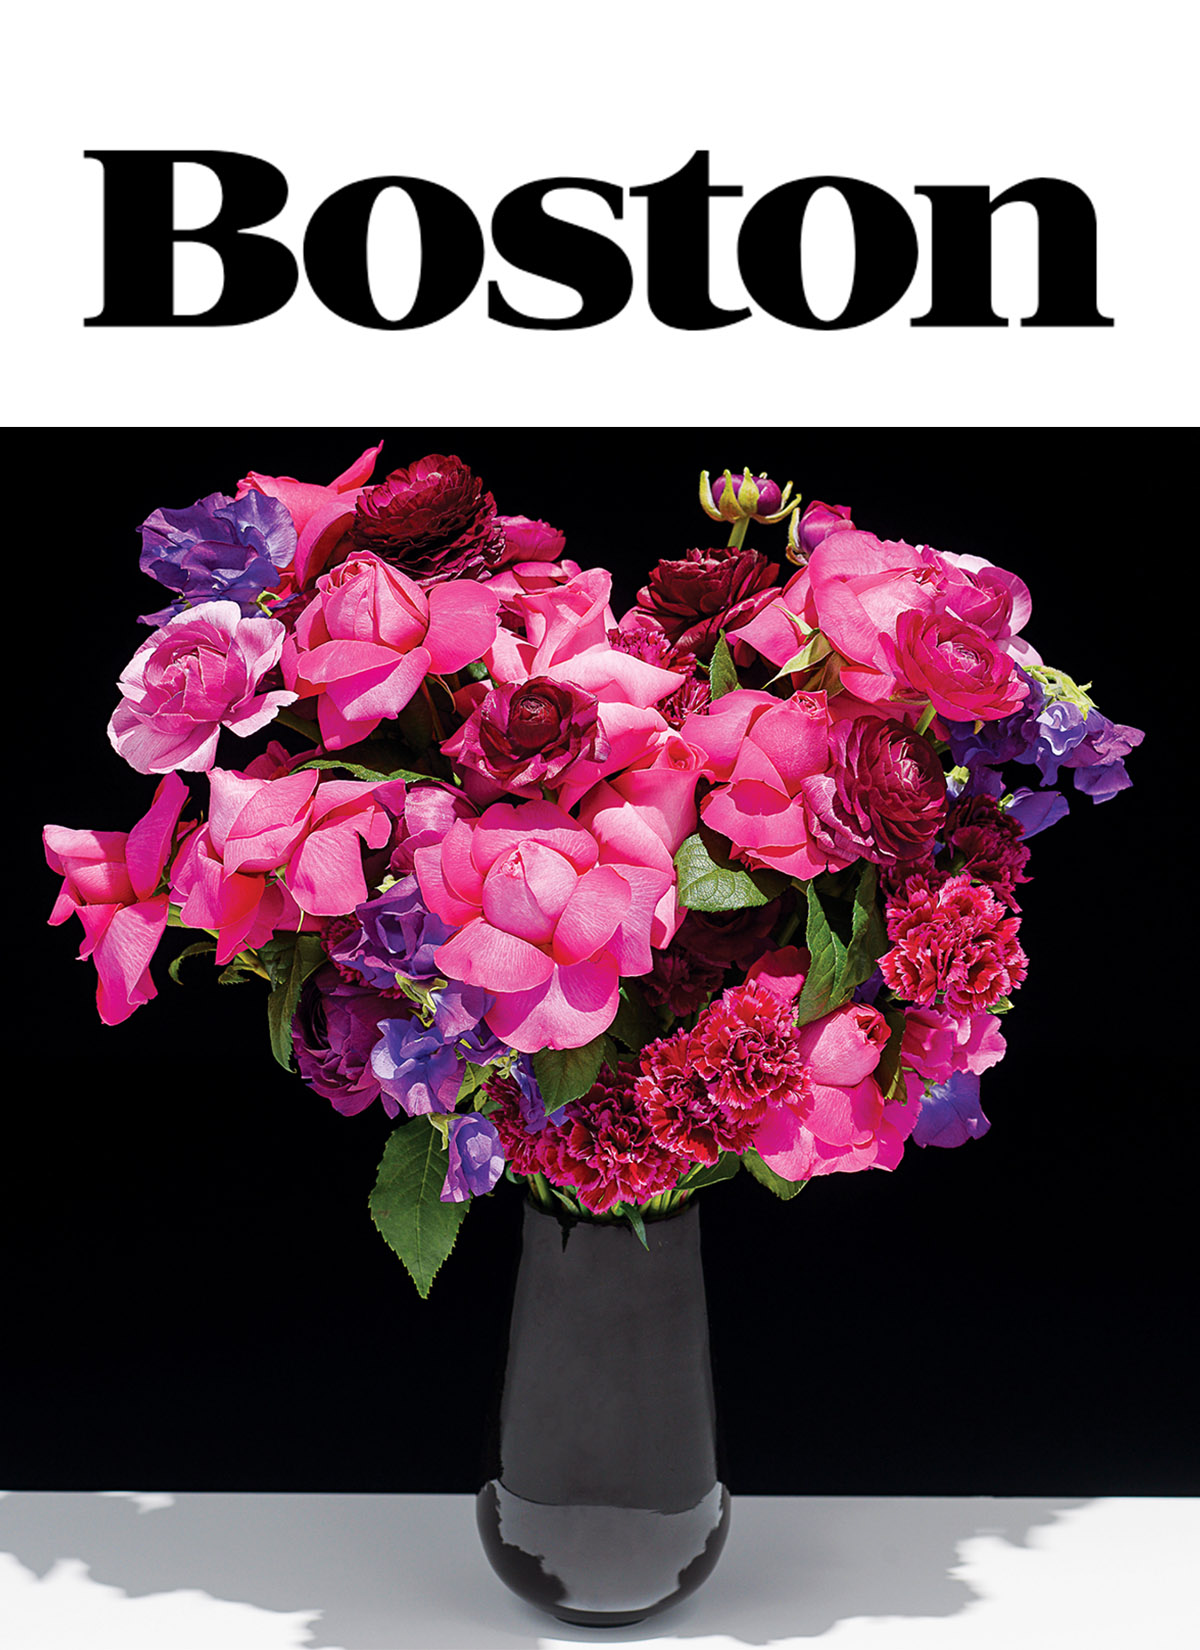 Boston Magazine, Feb. 2017